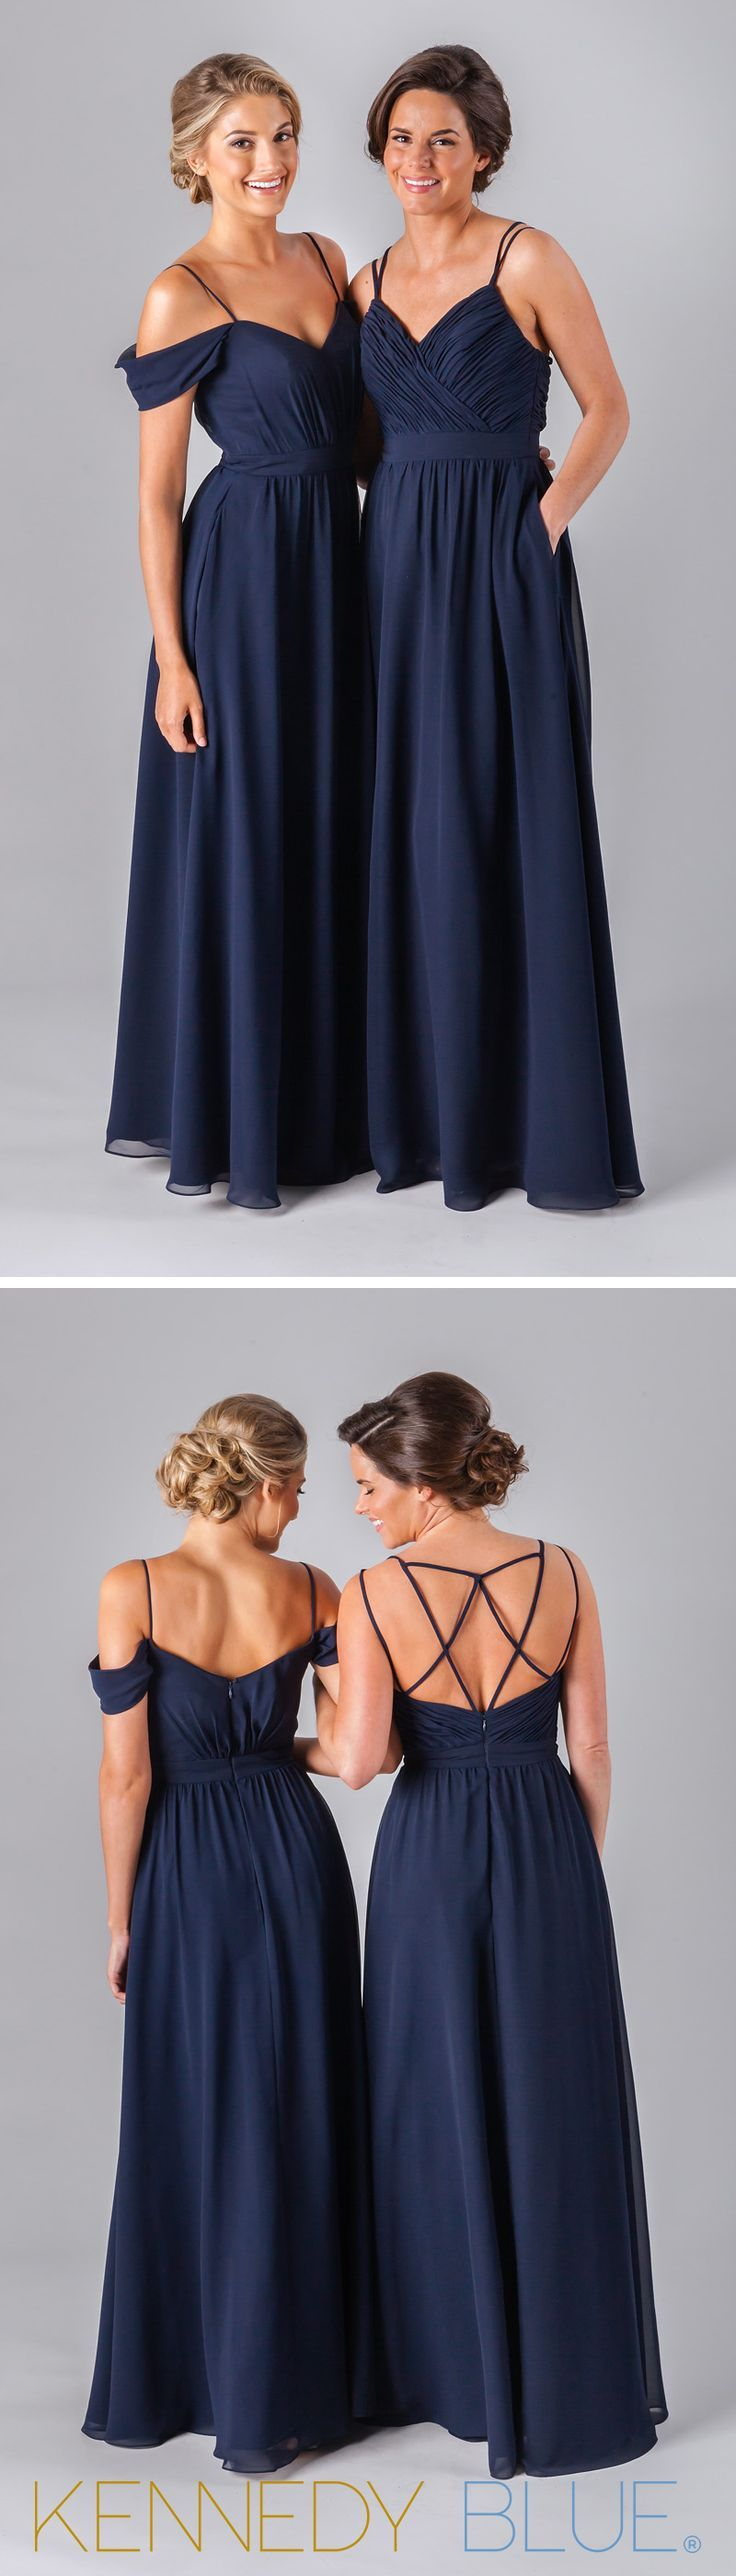 Mix and match chiffon bridesmaid dresses in navy. | Kennedy Blue